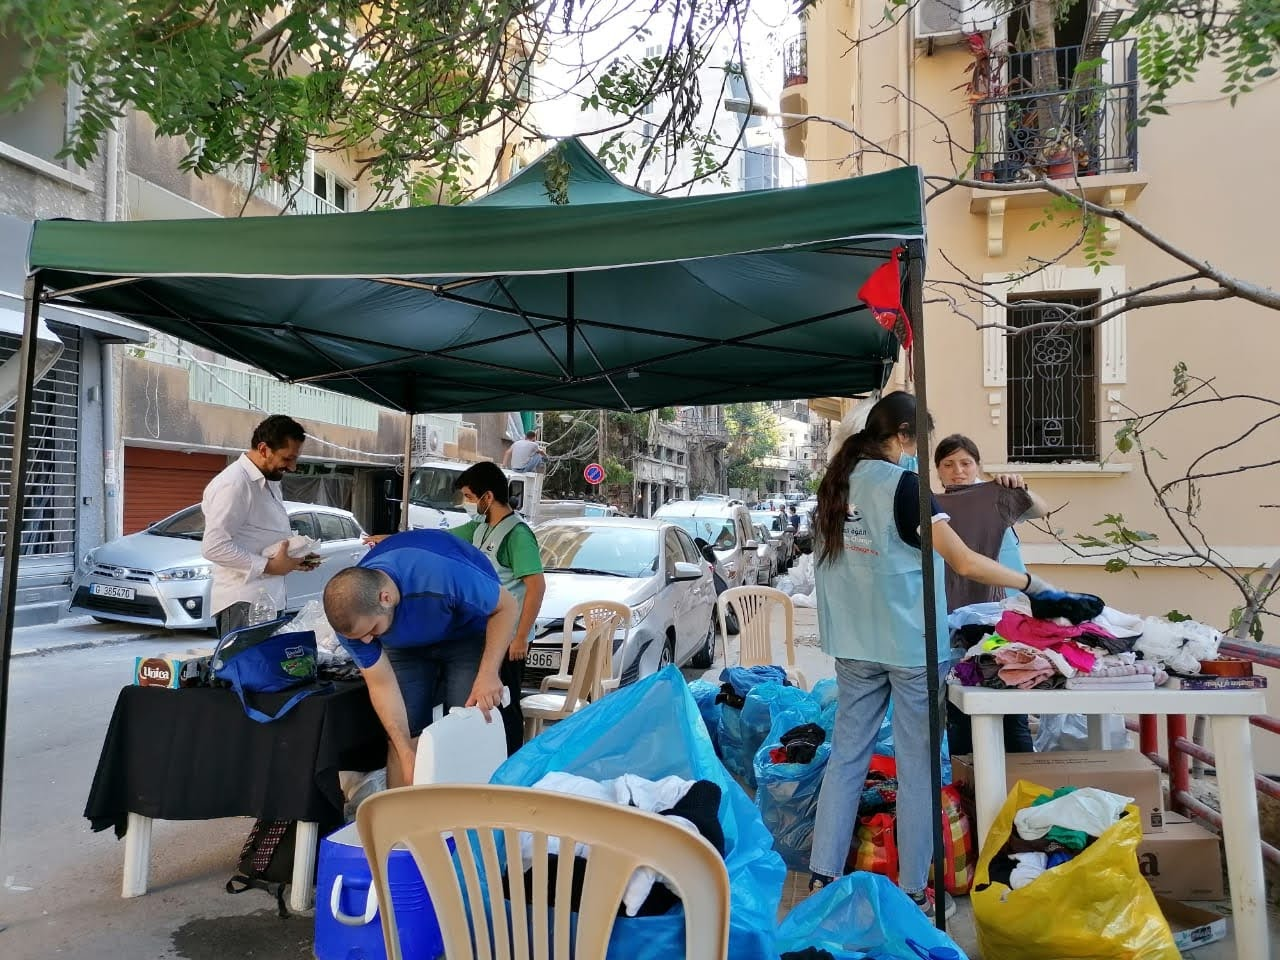 EYES ON BEIRUT – HOW THE CHURCH RESPONDED TO THE NEEDS AFTER BEIRUT BLAST